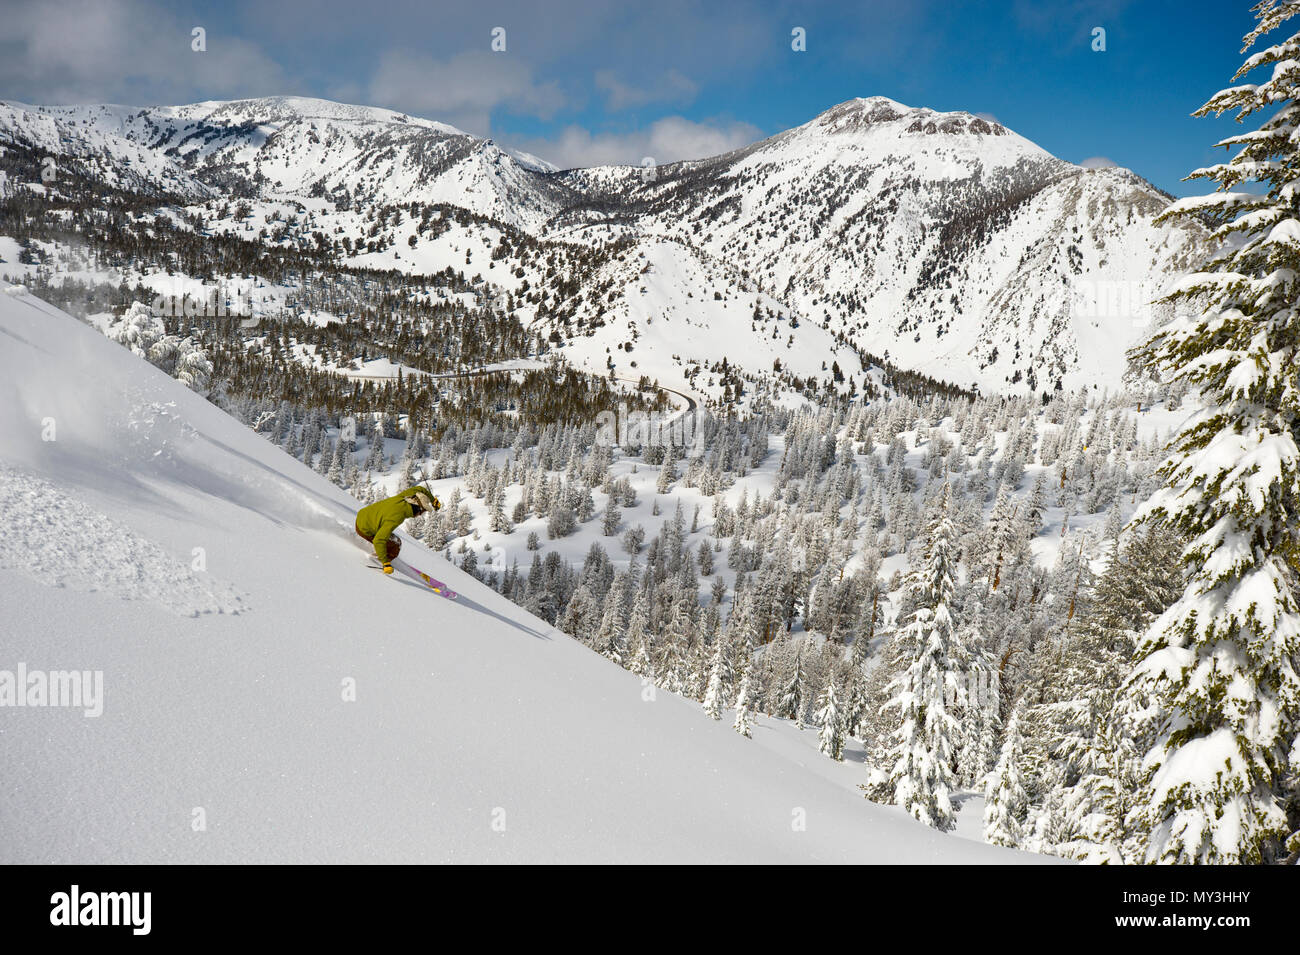 Powder day and first tracks at Mt. Rose Ski Tahoe in the Sierra mountains between Reno and Lake Tahoe. Stock Photo